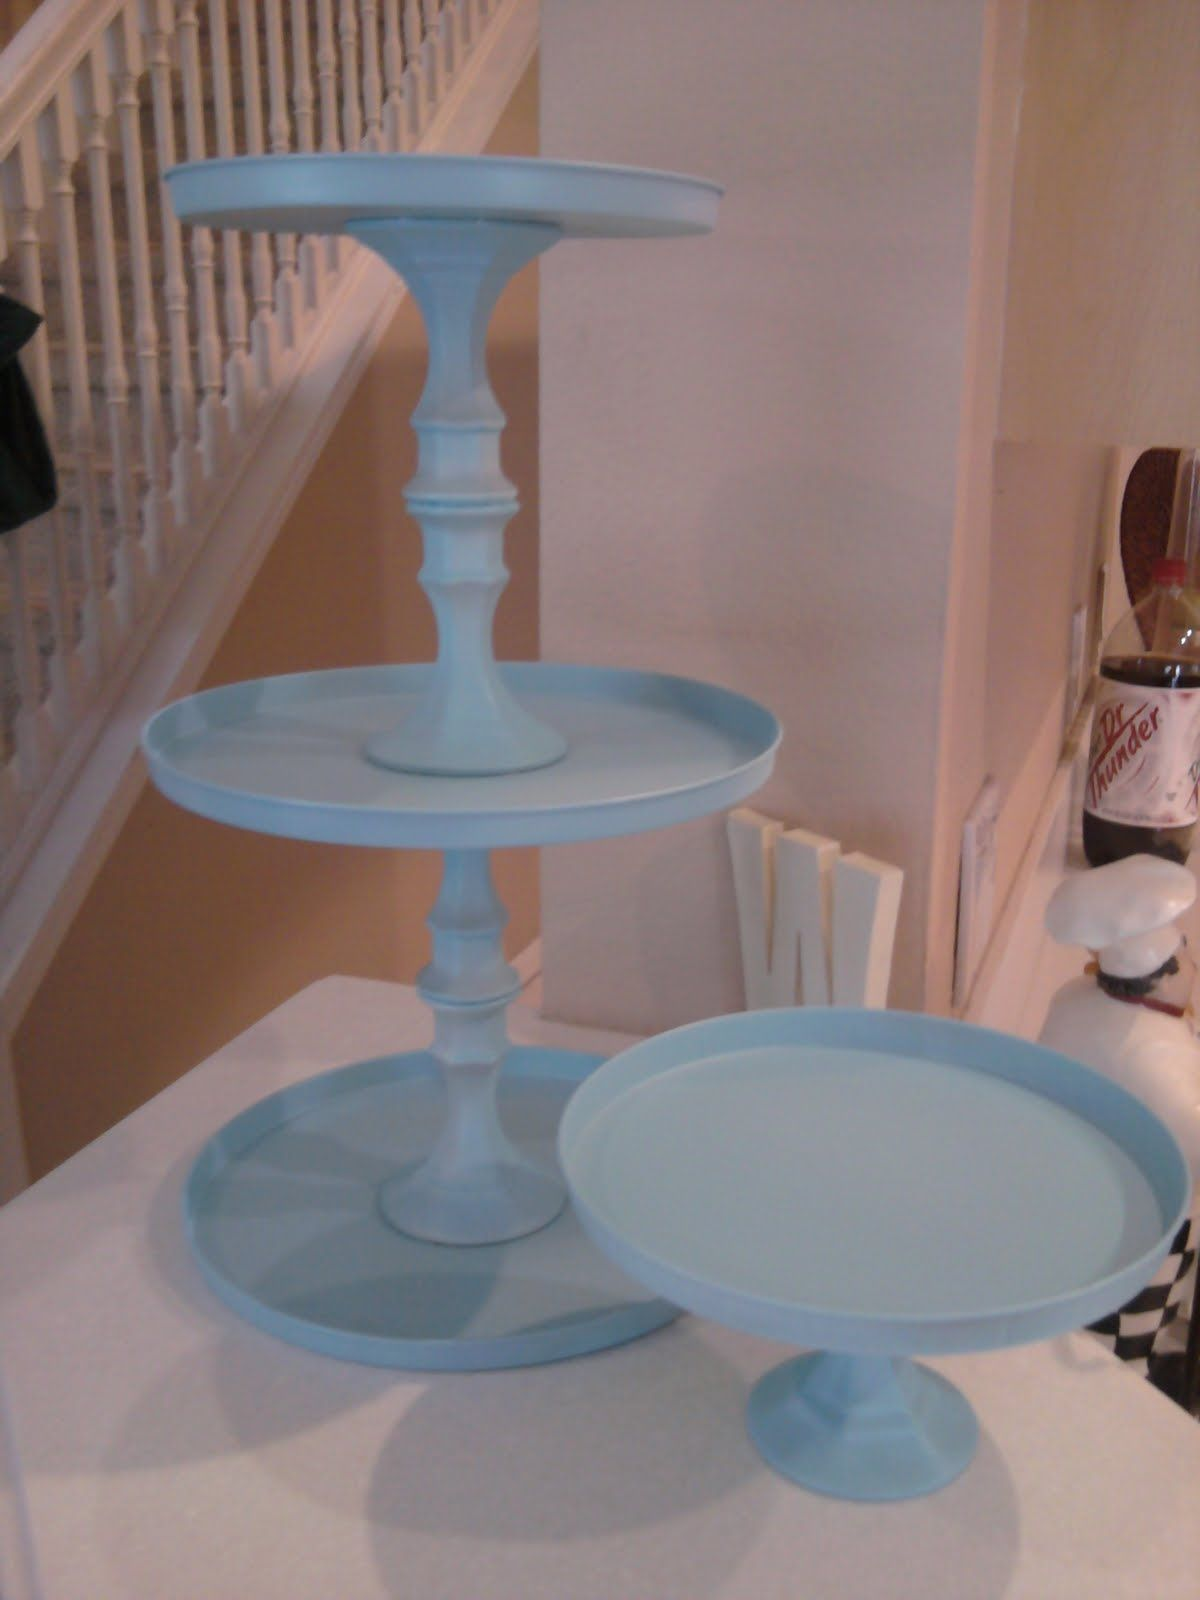 Dollar Tree Stove Covers And Candle Sticks Spay Painted And Glued